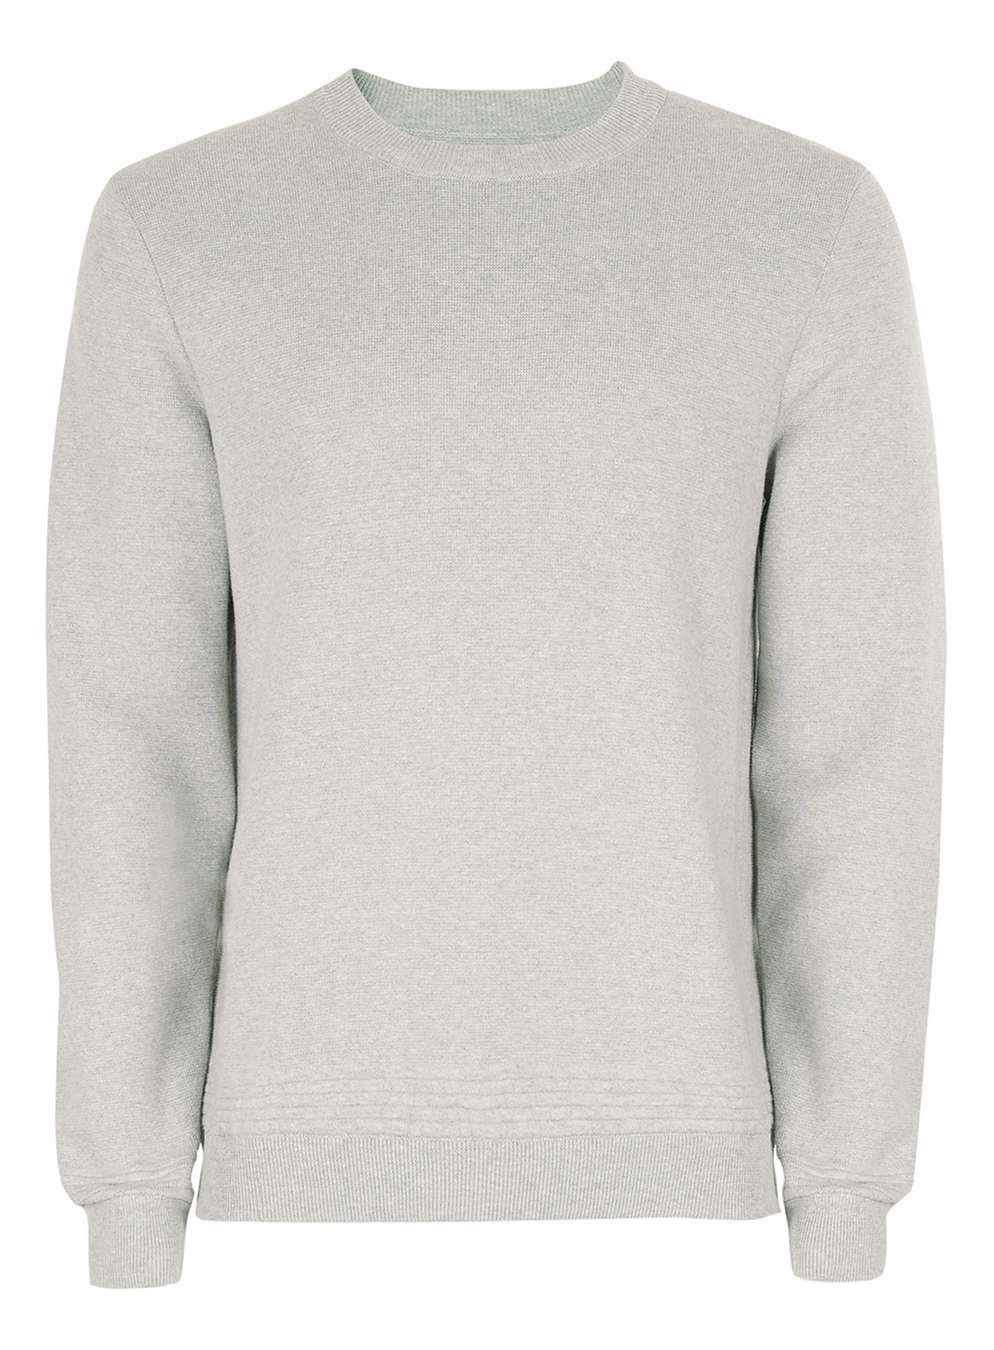 TOPMAN PREMIUM Grey Ribbed Crew Neck Jumper, £35